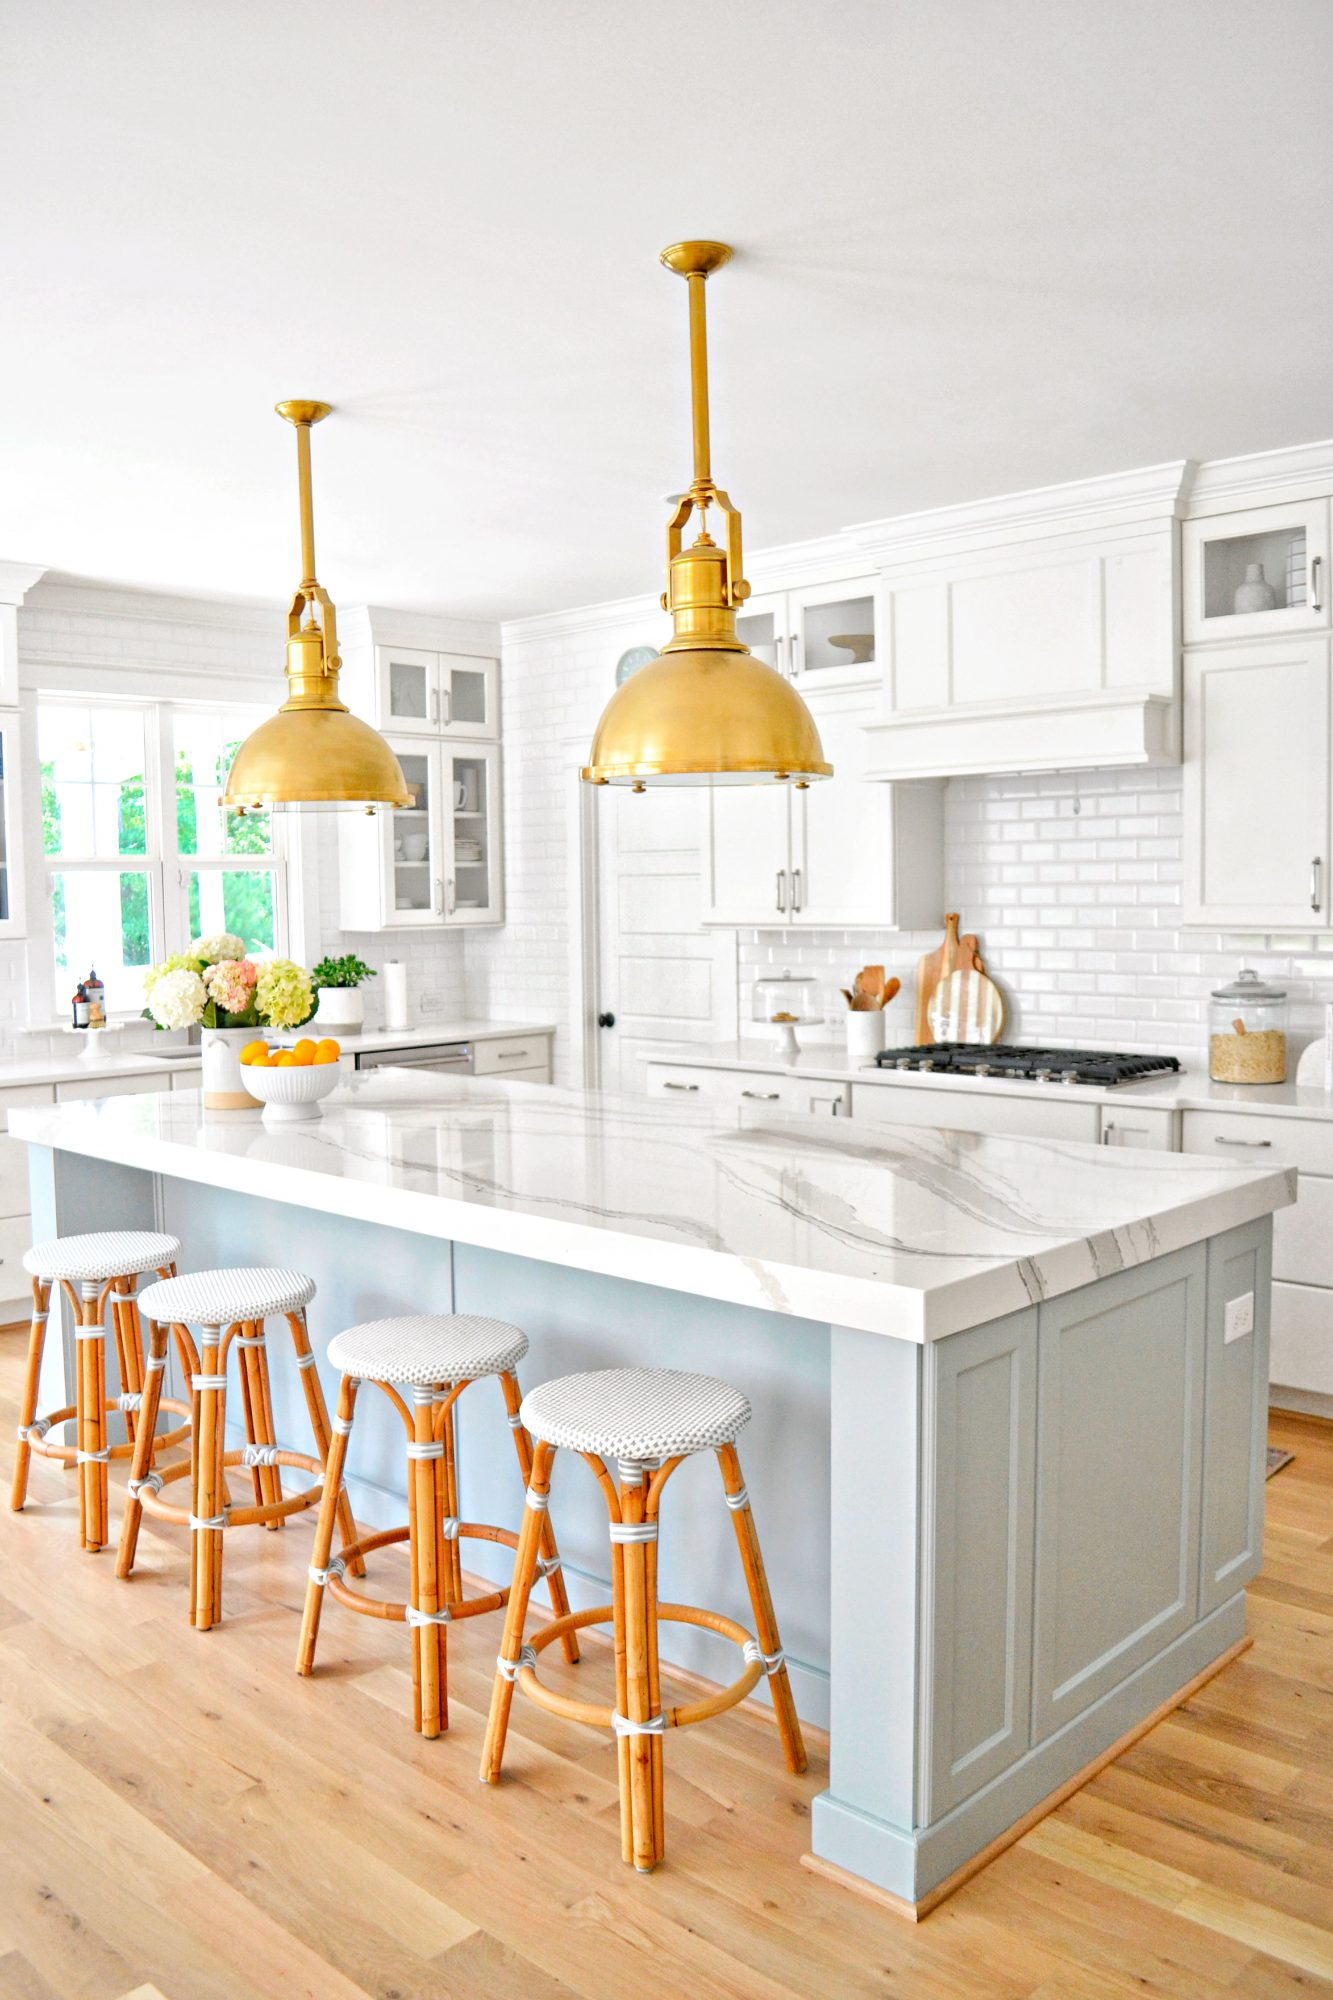 Blue and White Farmhouse Style Kitchen from Chrissy Serrano